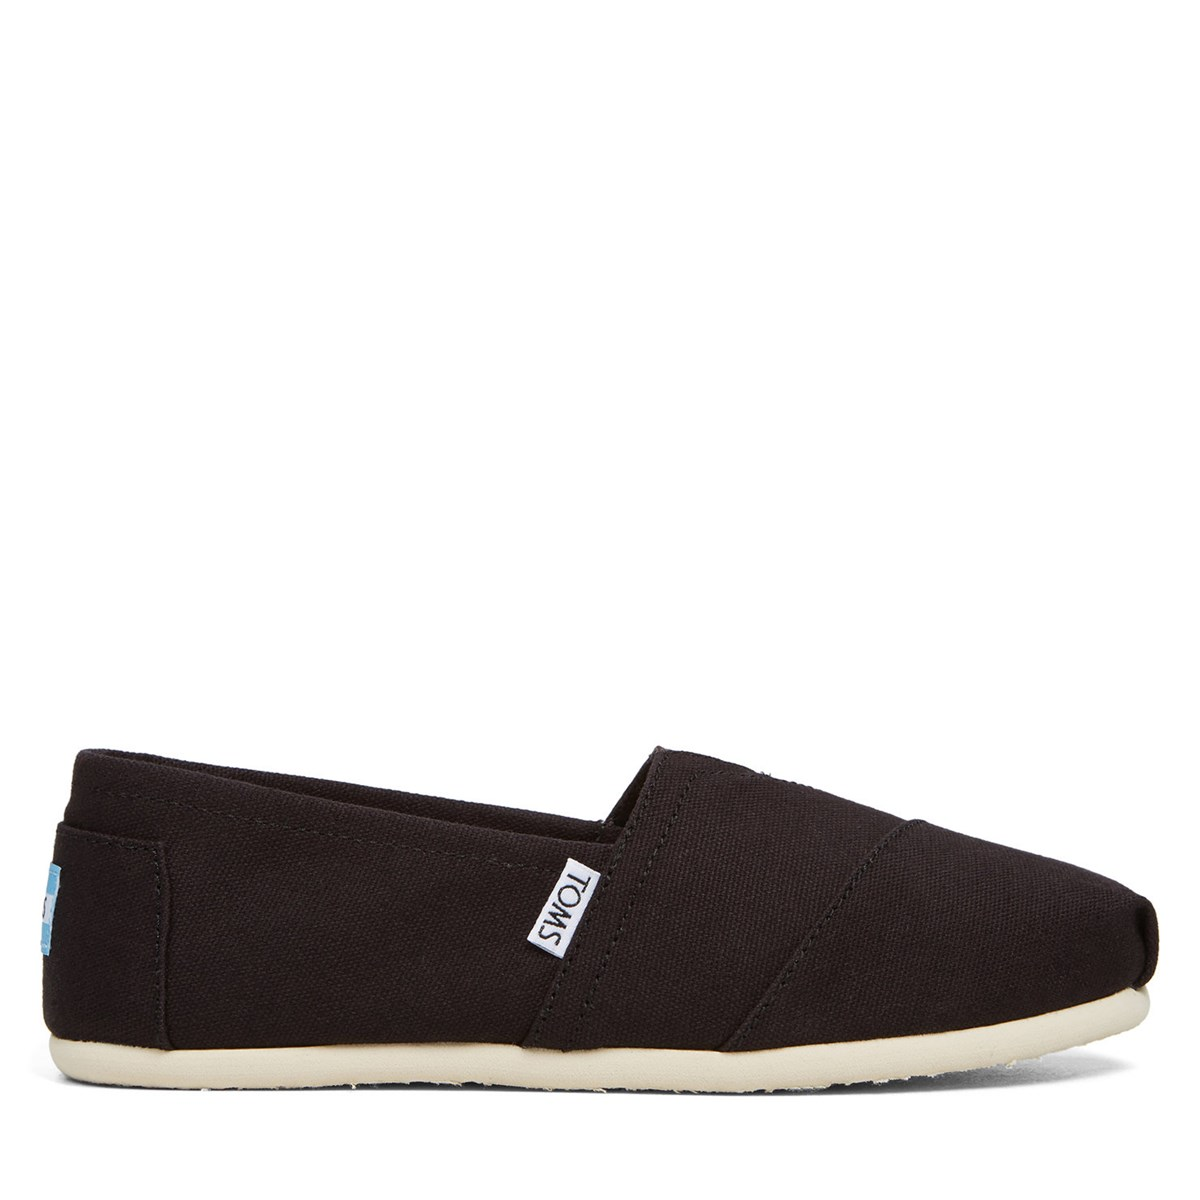 Women's Alpargata Canvas Slip-Ons in Black